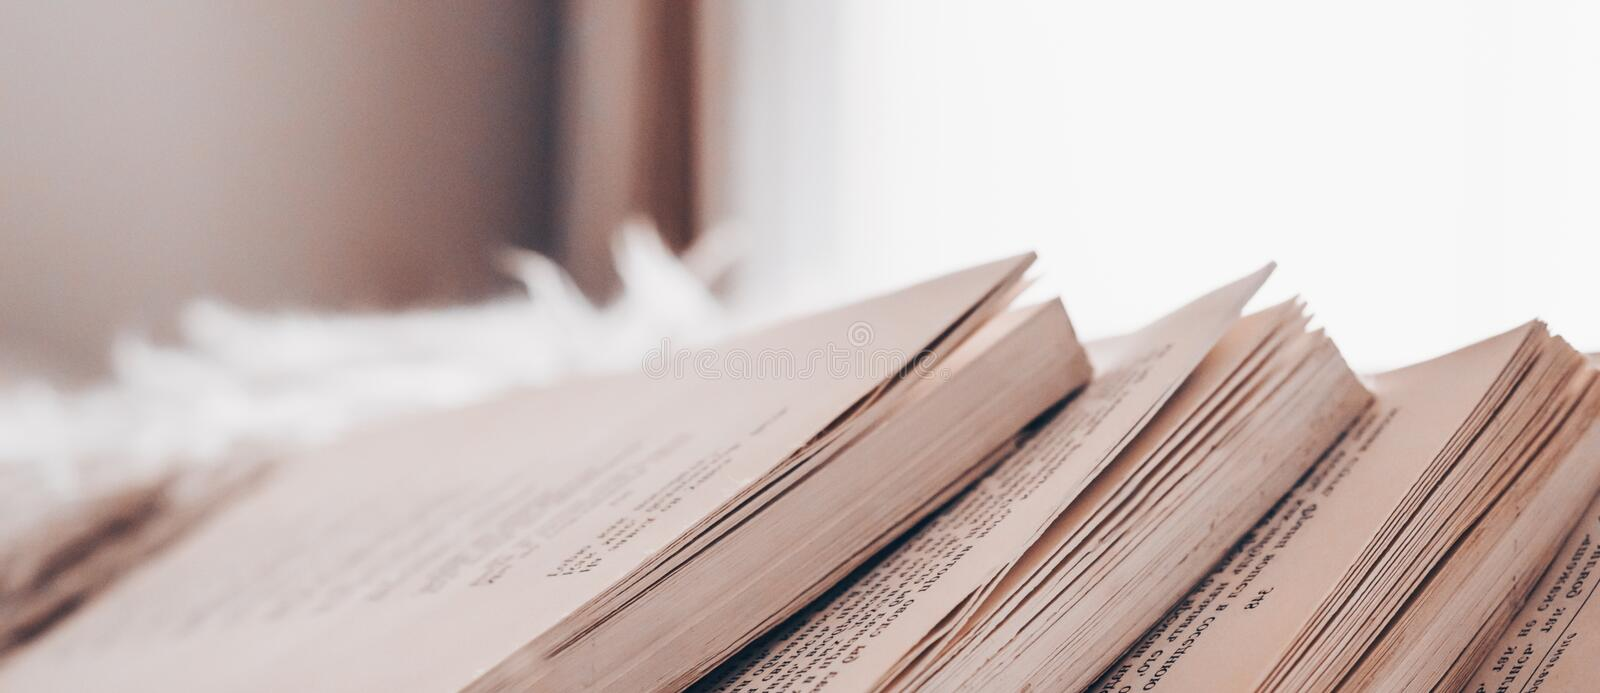 Chaotic stack of old books pastel colors, selective focus with copy space. Background from books. Books close up. royalty free stock photography